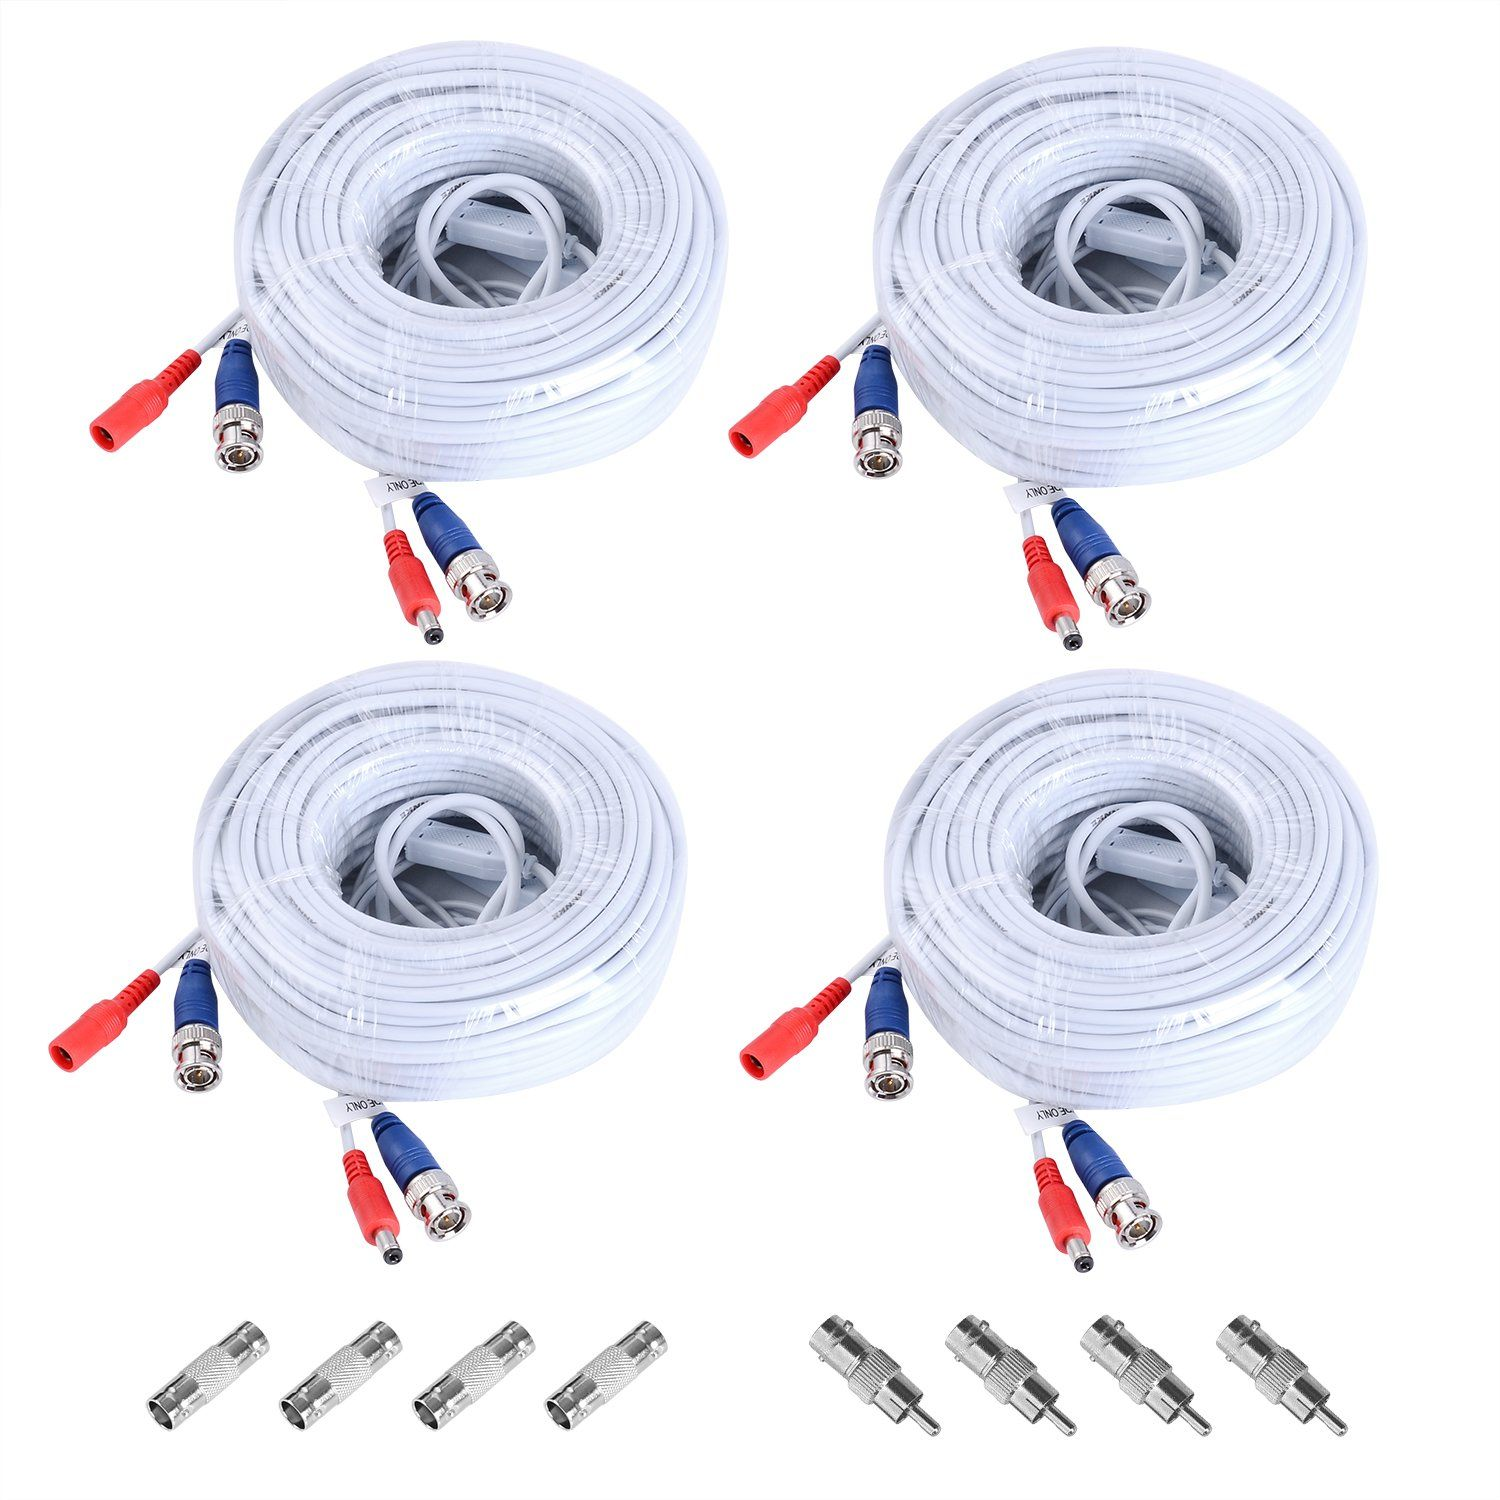 Sannce 4 pack 30m 100 feet bnc video power cable for cctv camera sannce 4 pack 30m 100 feet bnc video power cable for cctv camera dvr security publicscrutiny Image collections